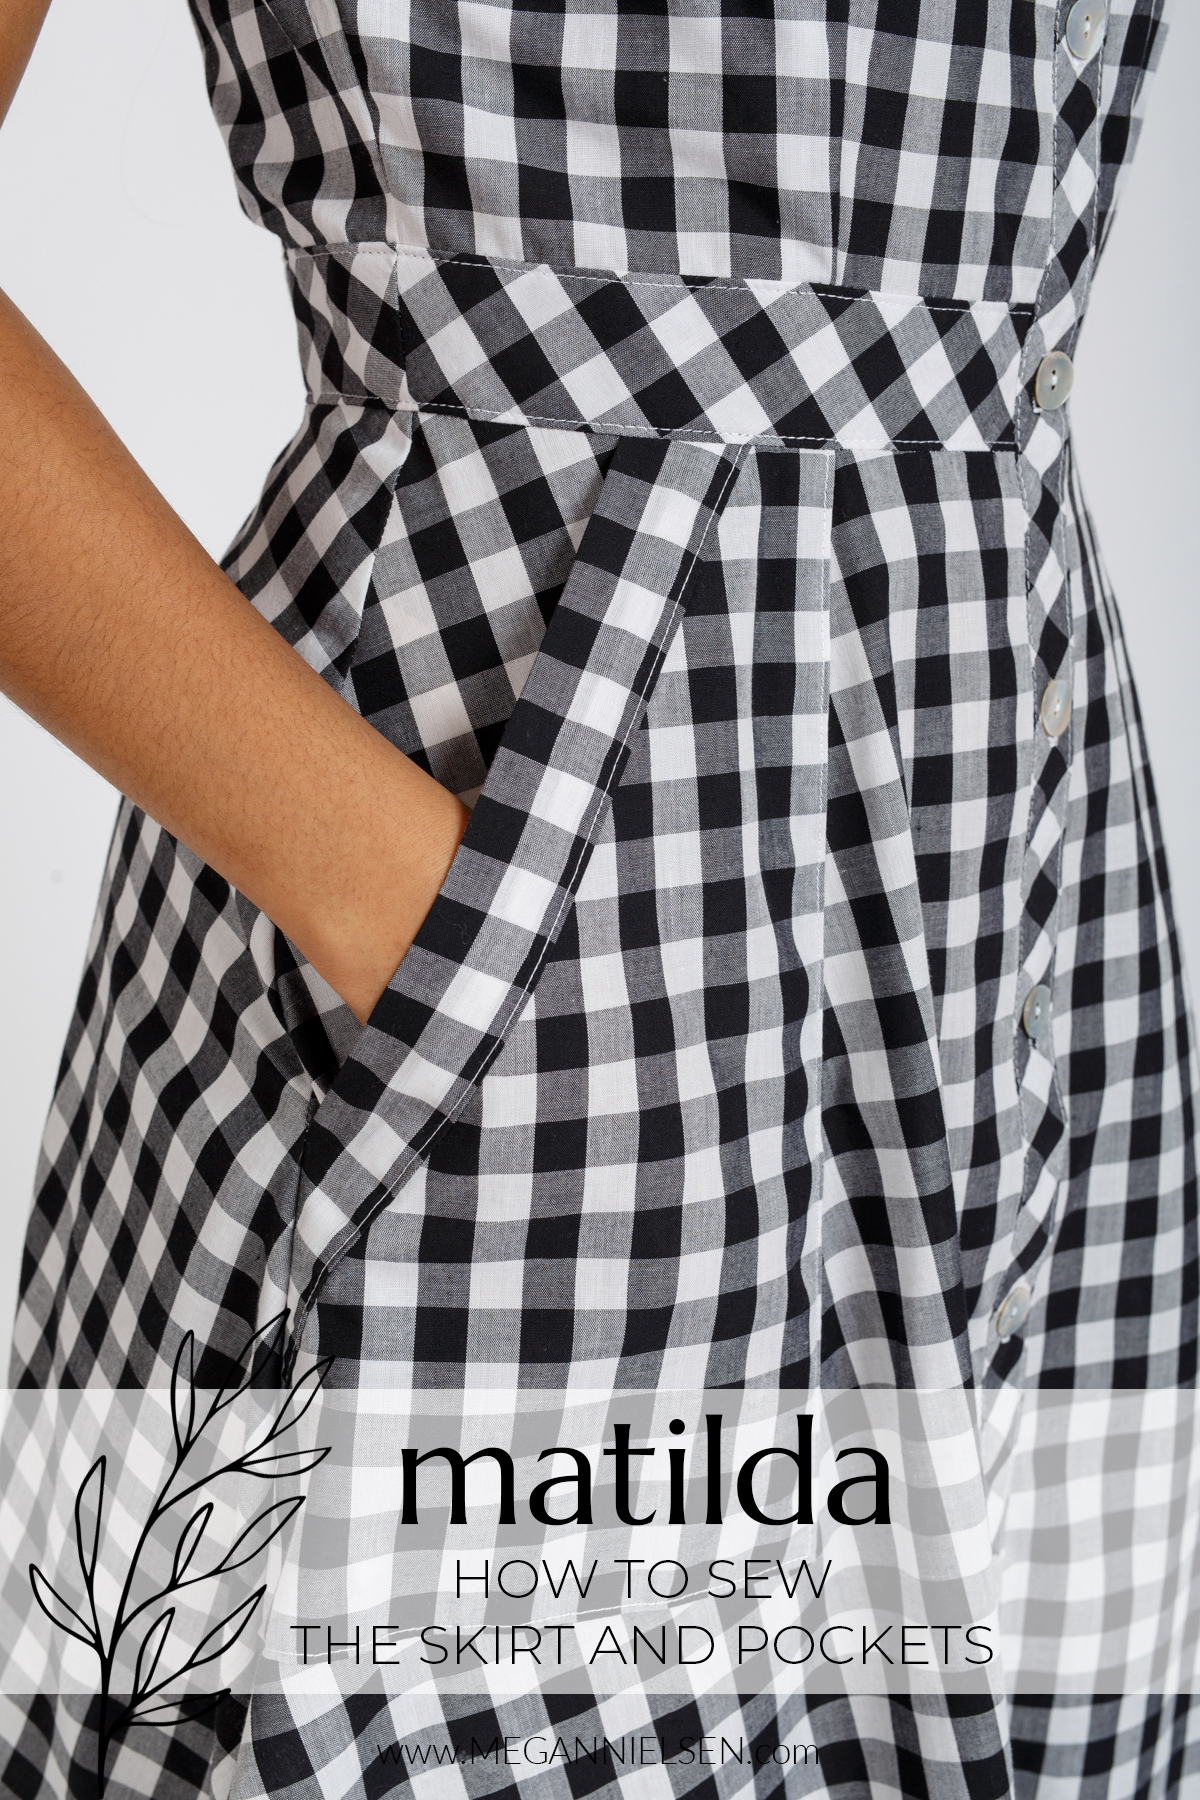 Matilda - How to sew the skirt and pockets